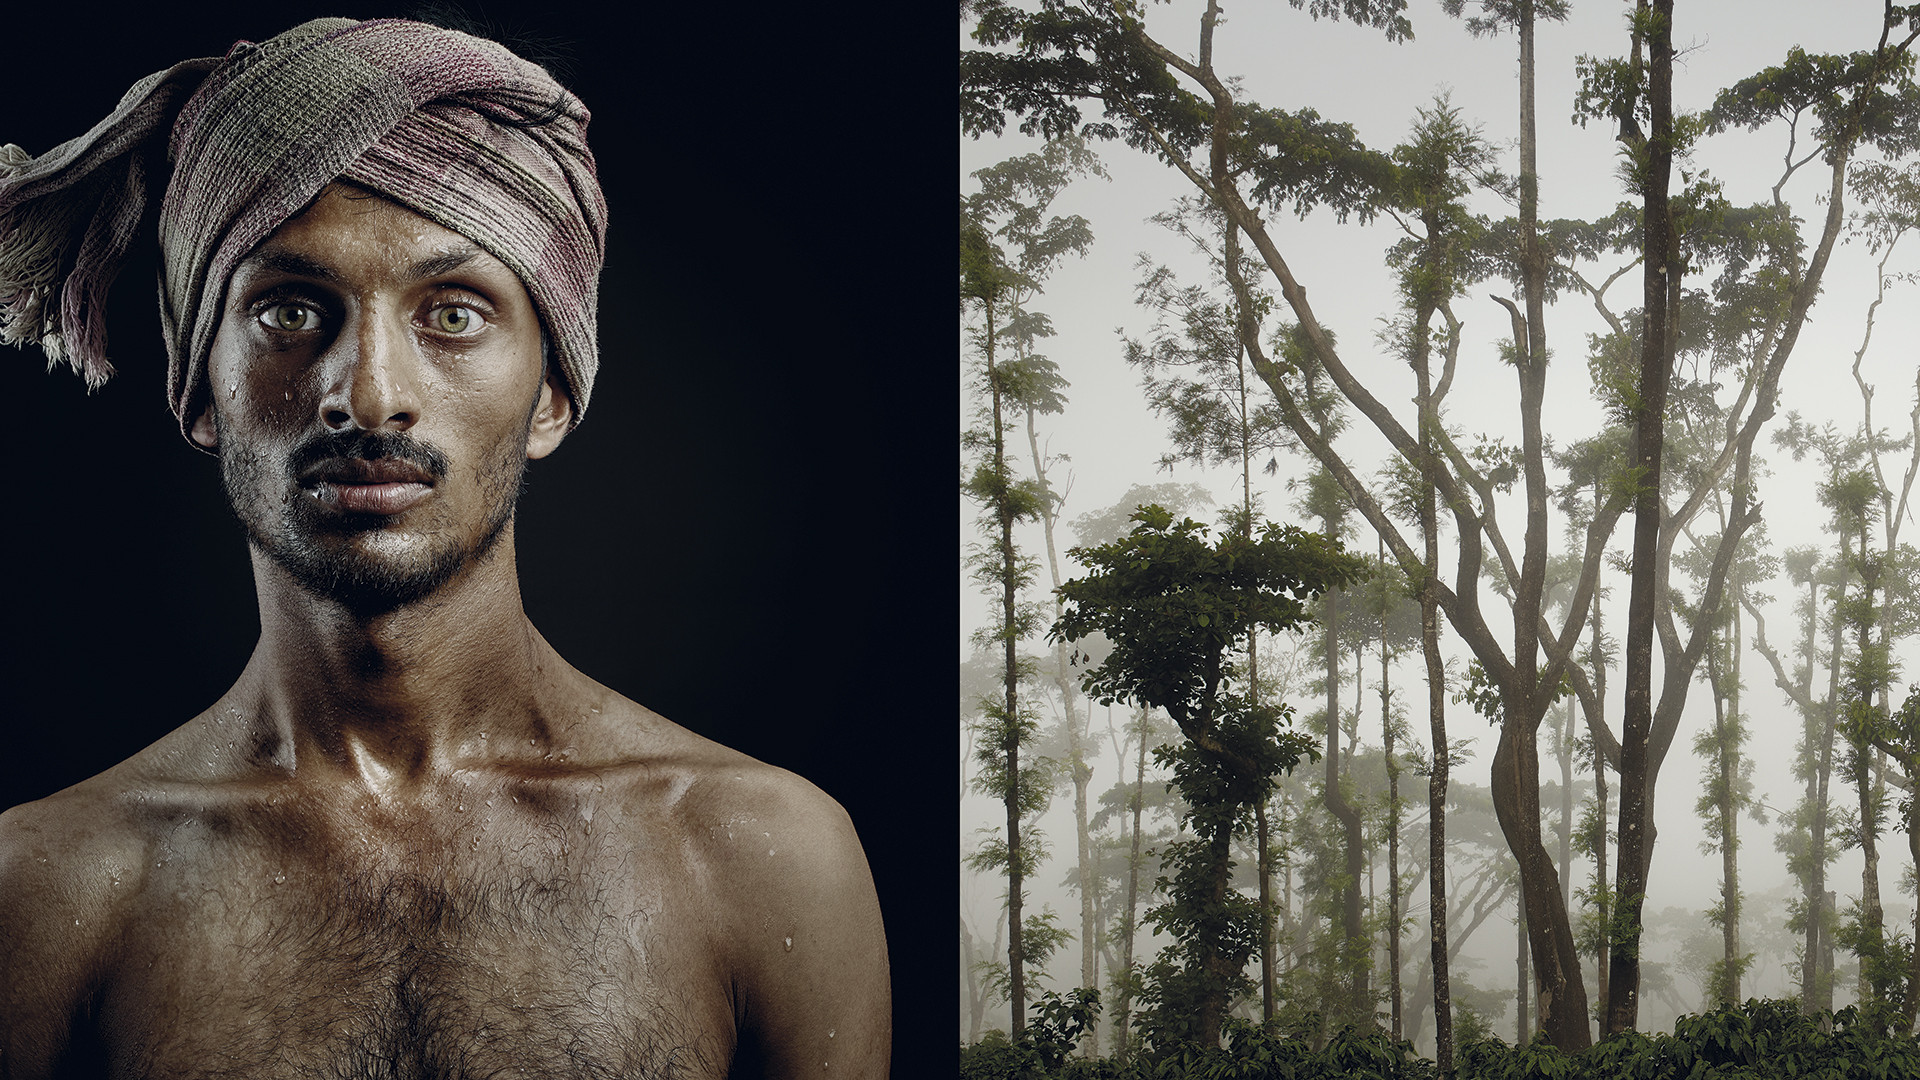 The disparate nature of the forest — where the coffee plant grows amidst an infinite number of other trees — can be found in the features and hues of a young man's face, which blends diverse origins and provenances.